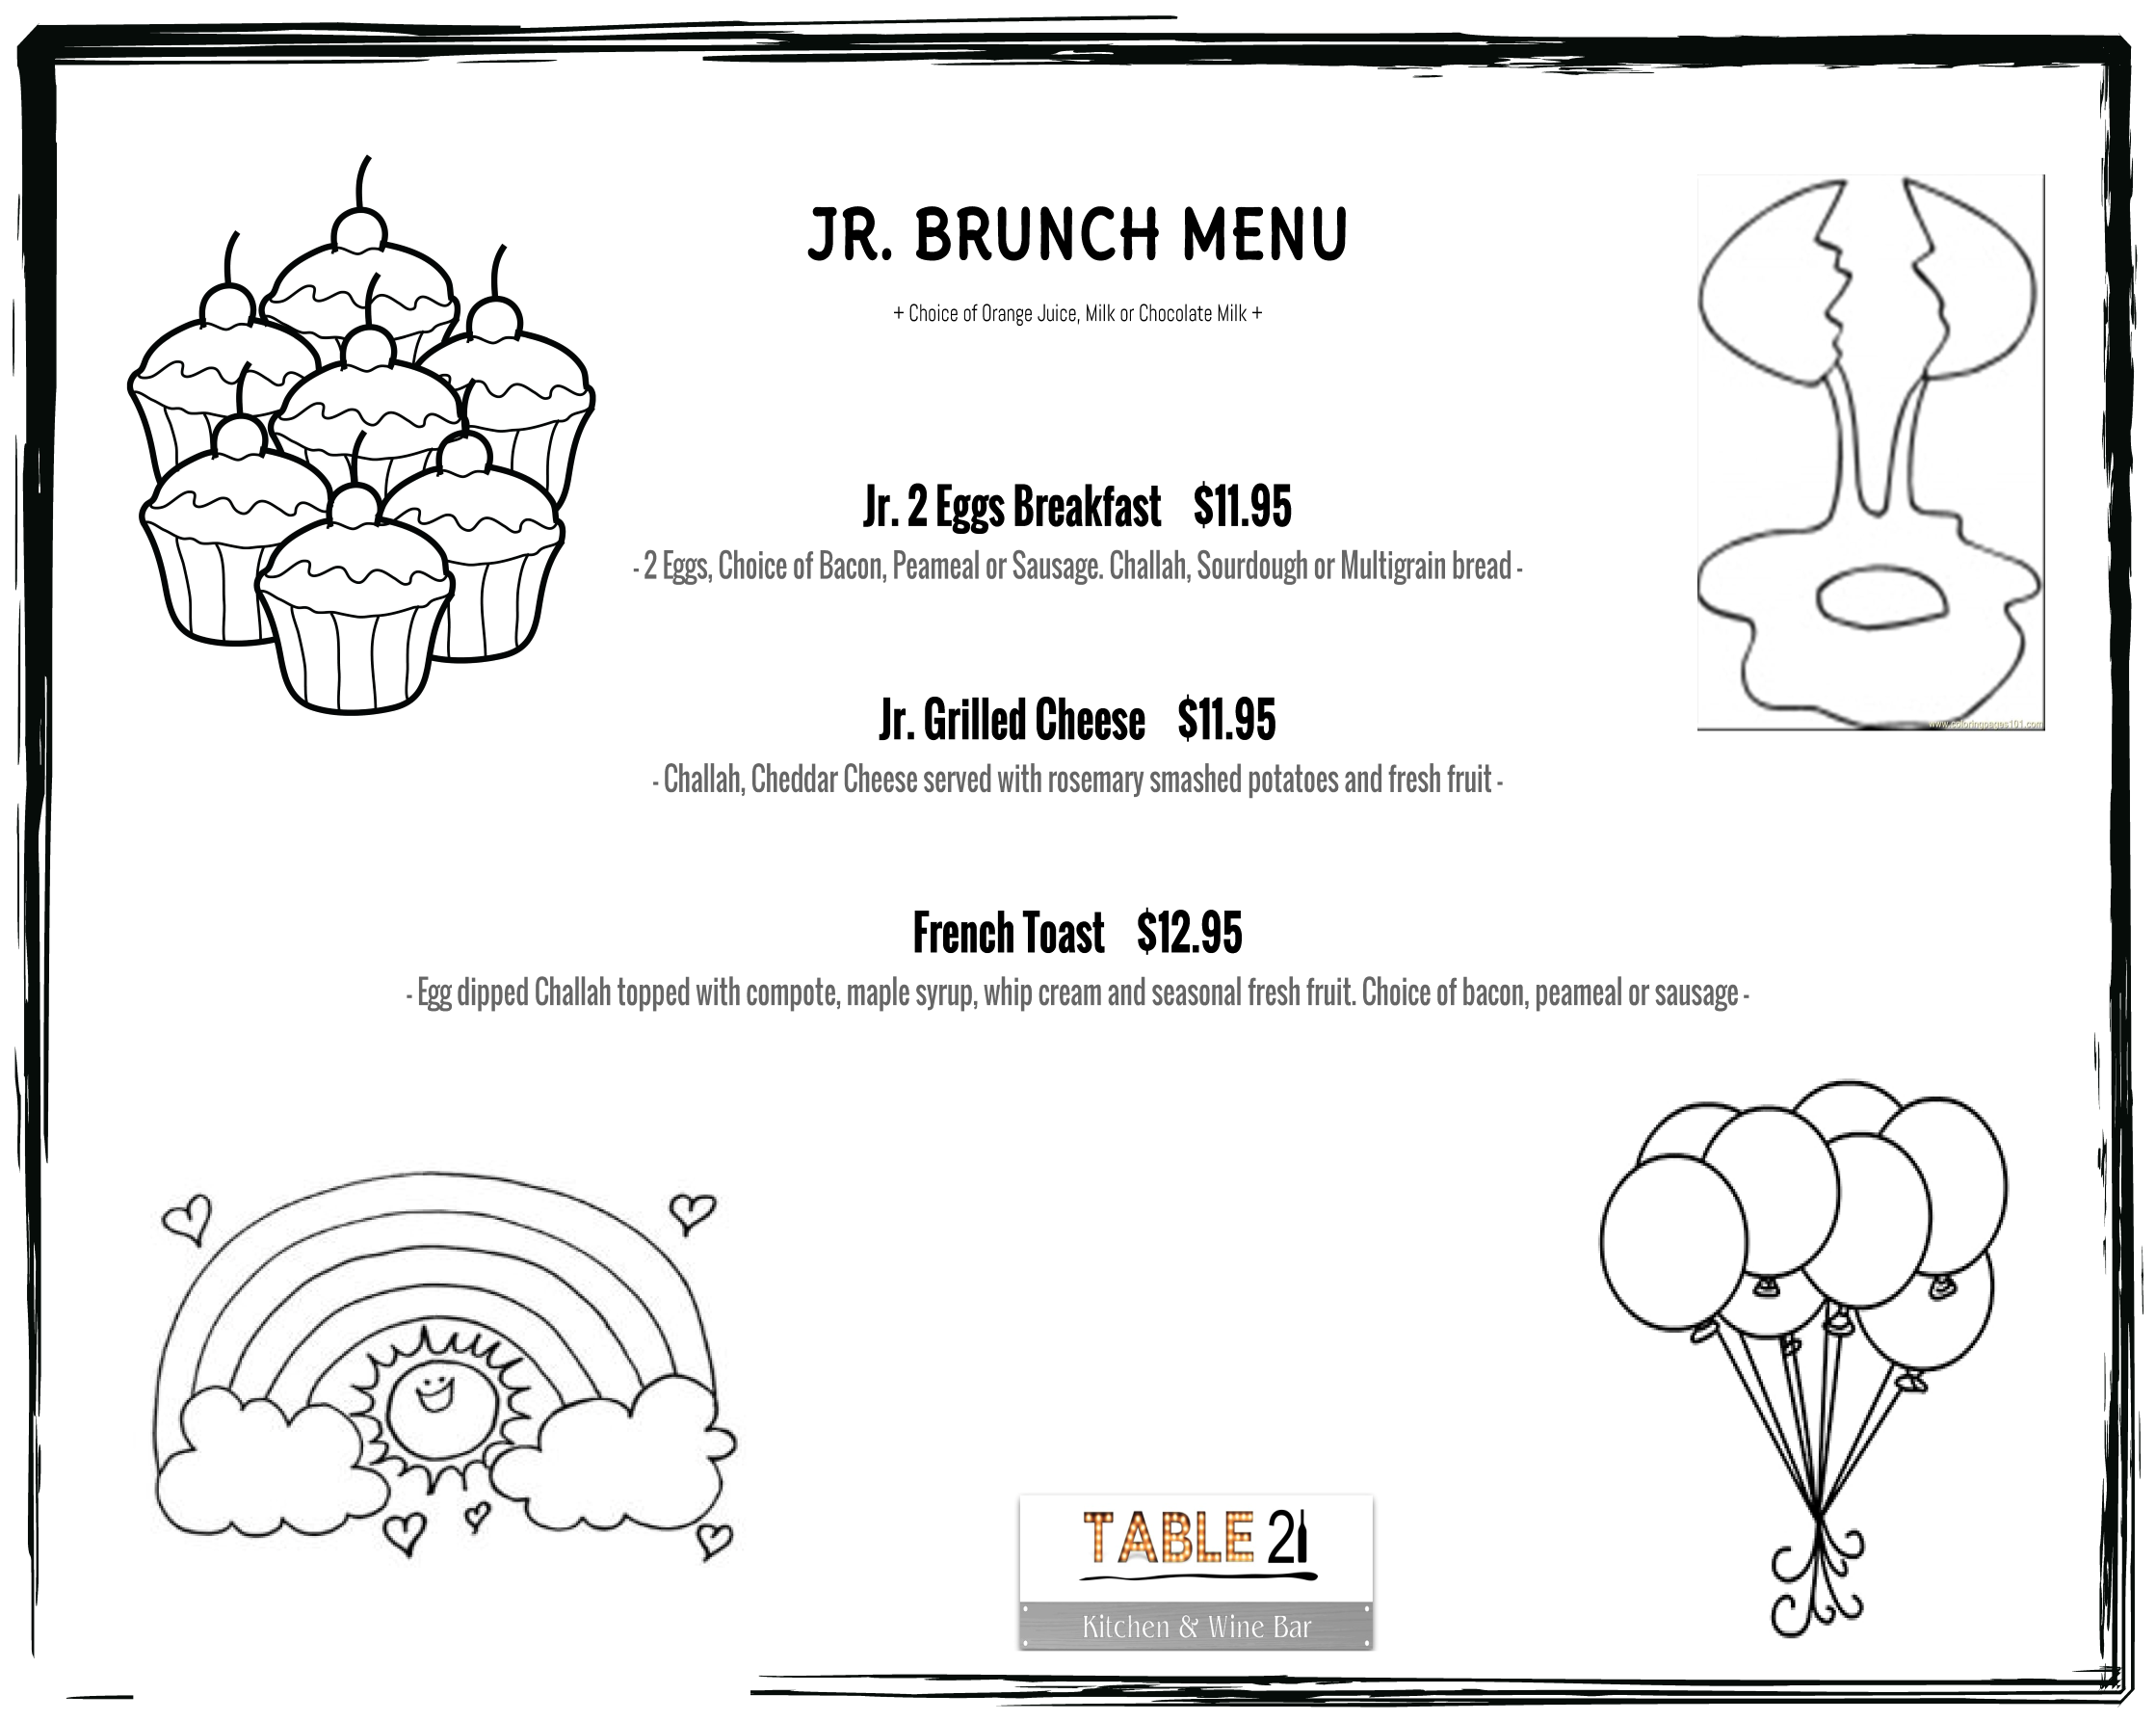 JR. BRUNCH MENU - June 2019.png